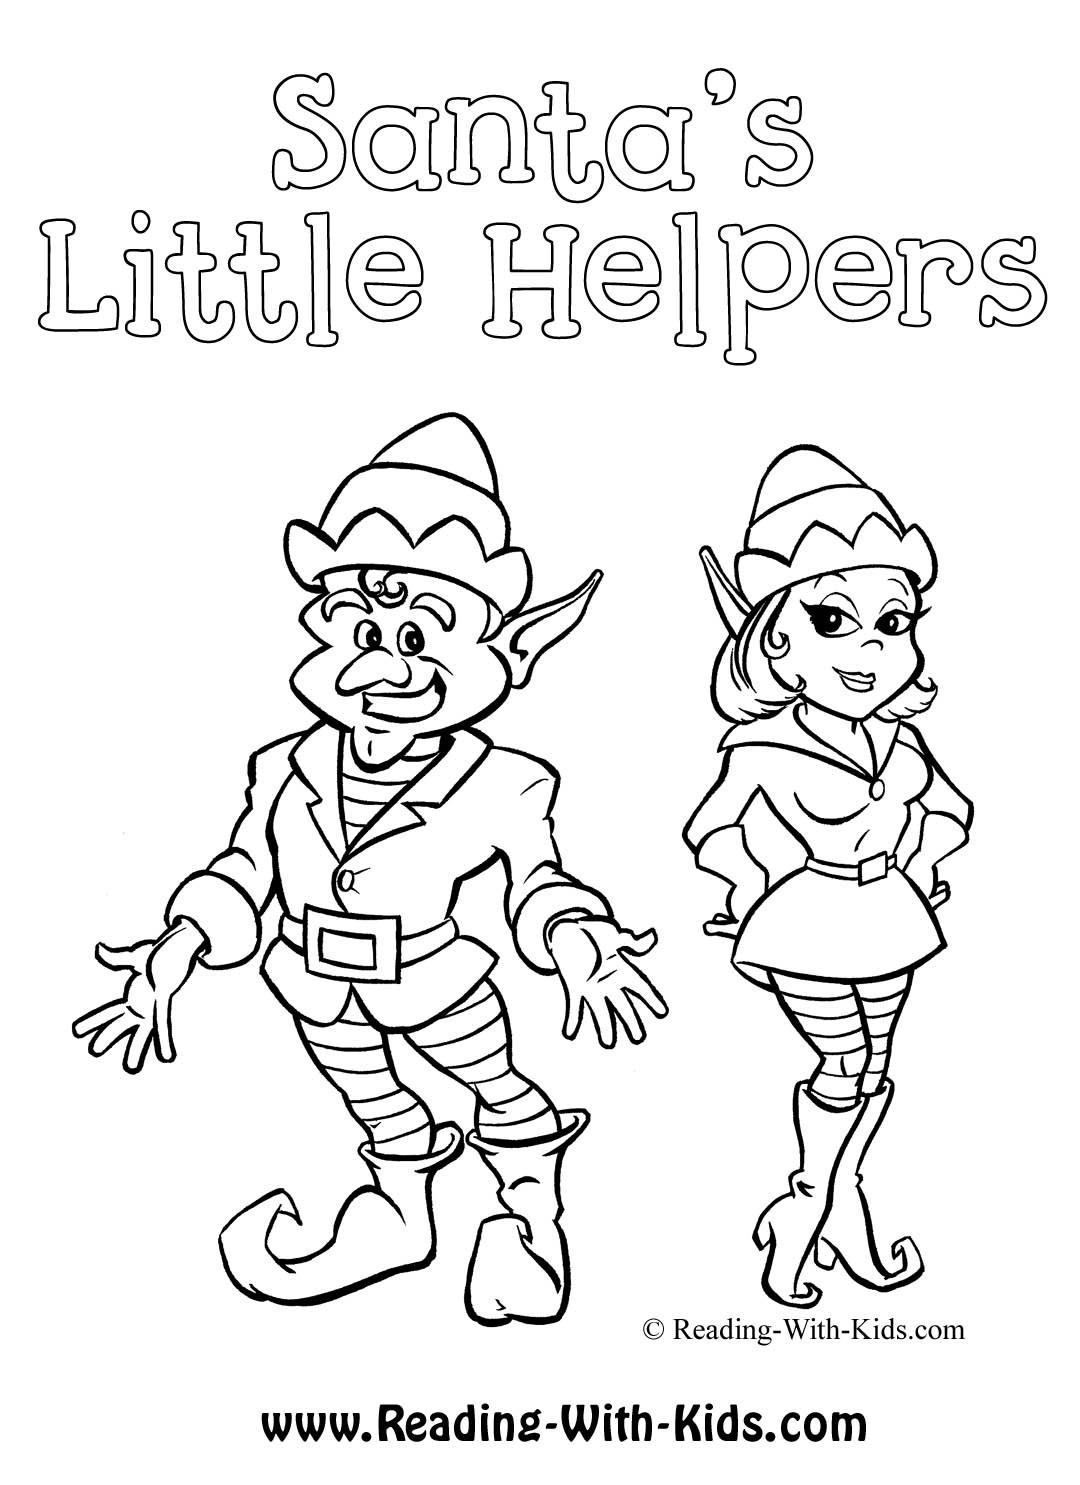 1080x1485 Elf On The Shelf Coloring Sheet Lovely Elf Drawing